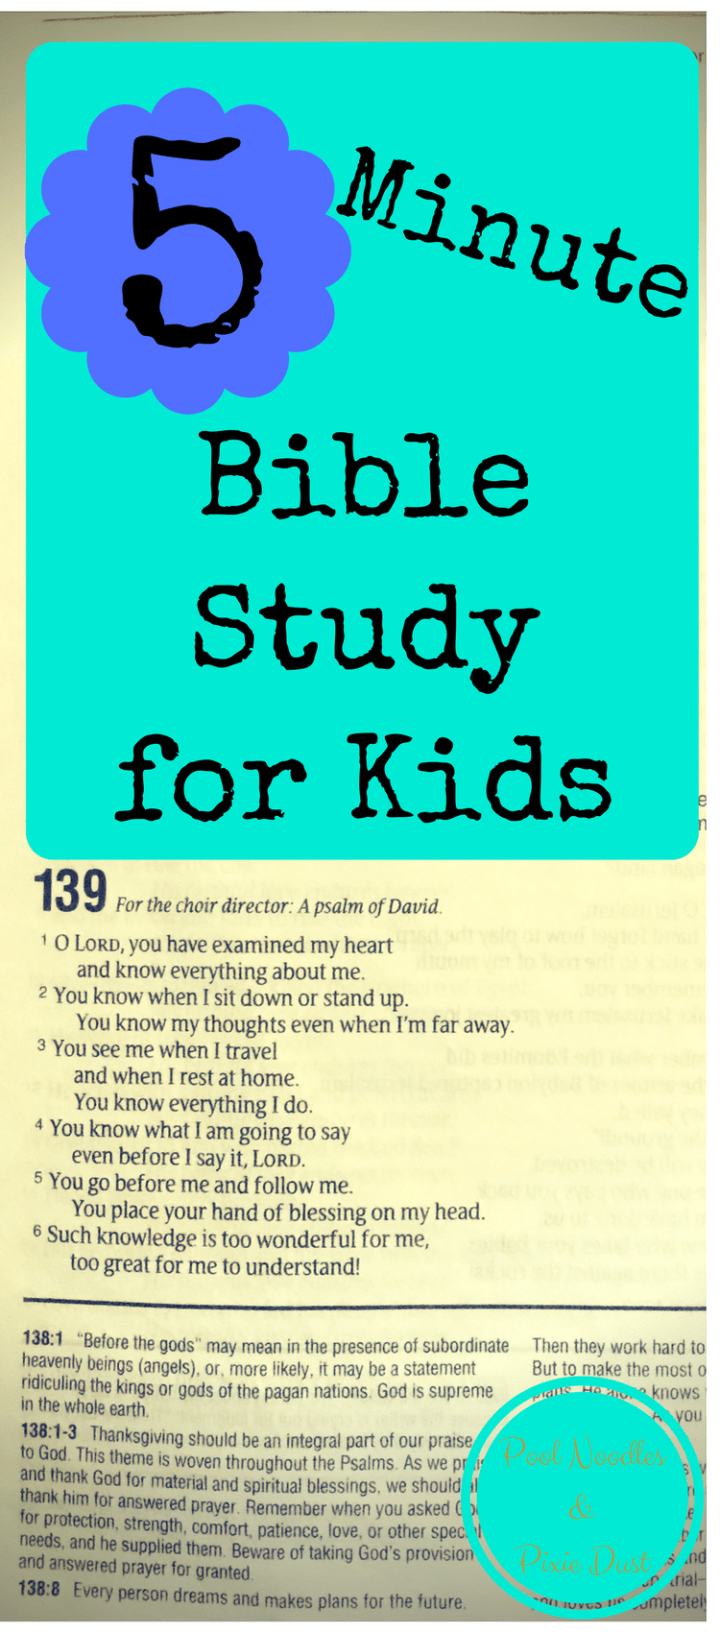 Simplify your Homeschool with 5-Minute Bible Studies for Kids